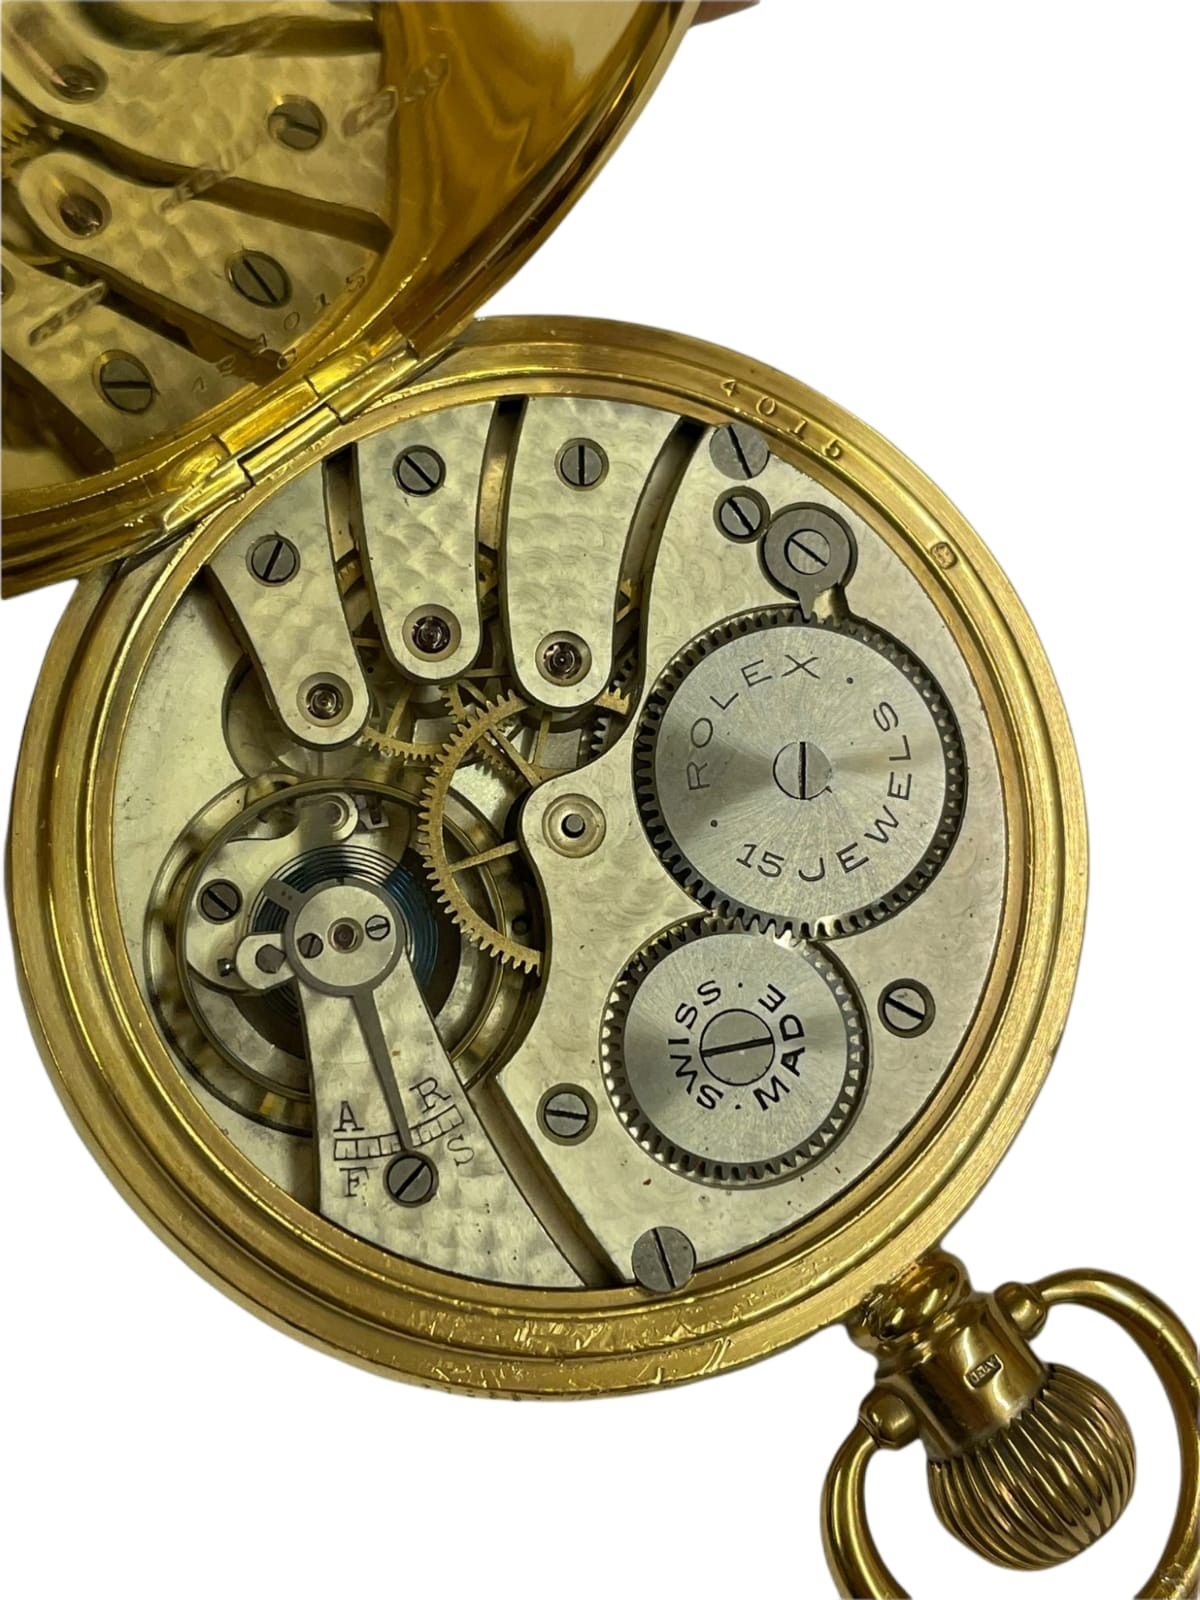 Vintage Masonic Rolex pocket watch with stand good condition and good working order but no - Image 8 of 21